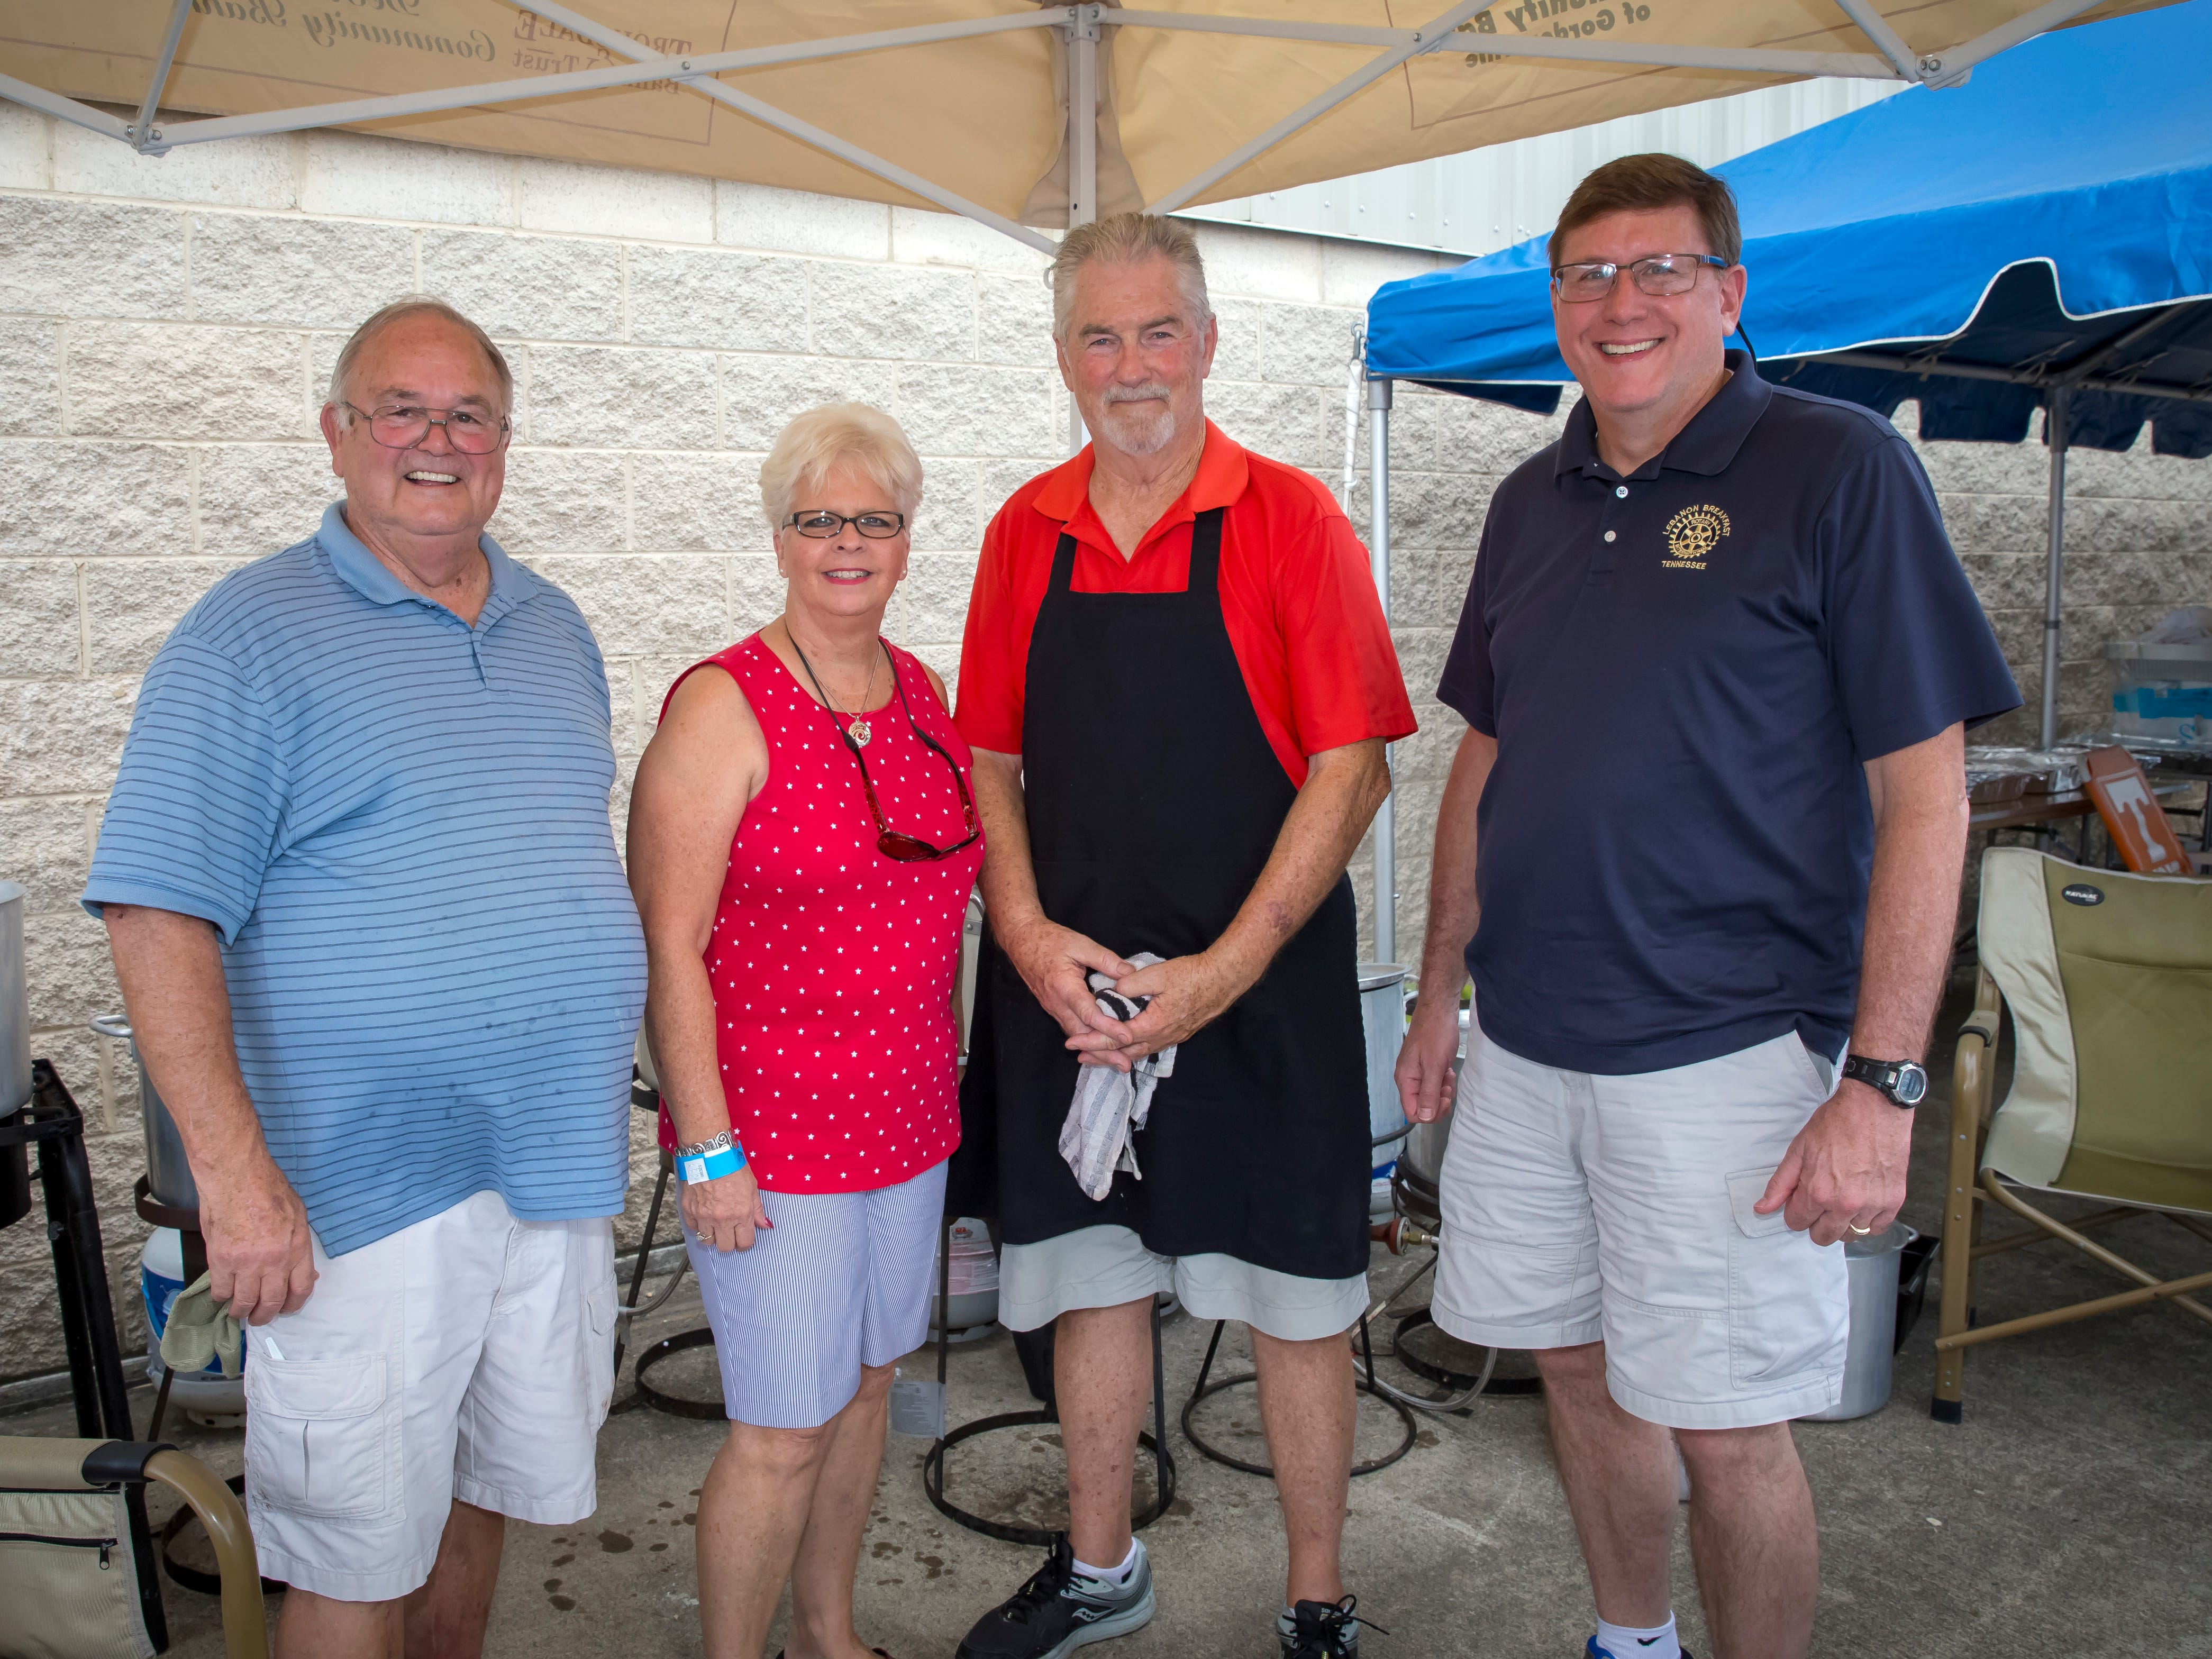 Ed Garner, Robbie Castleberry, Lowe McCrary and Paul Nawiseniak at the Wings of Freedom Fish Fry hosted by Smyrna Rotary Club. The event was held Saturday, Sept. 8, 2018 at the Corporate Flight Management Hangar at Smyrna Airport.